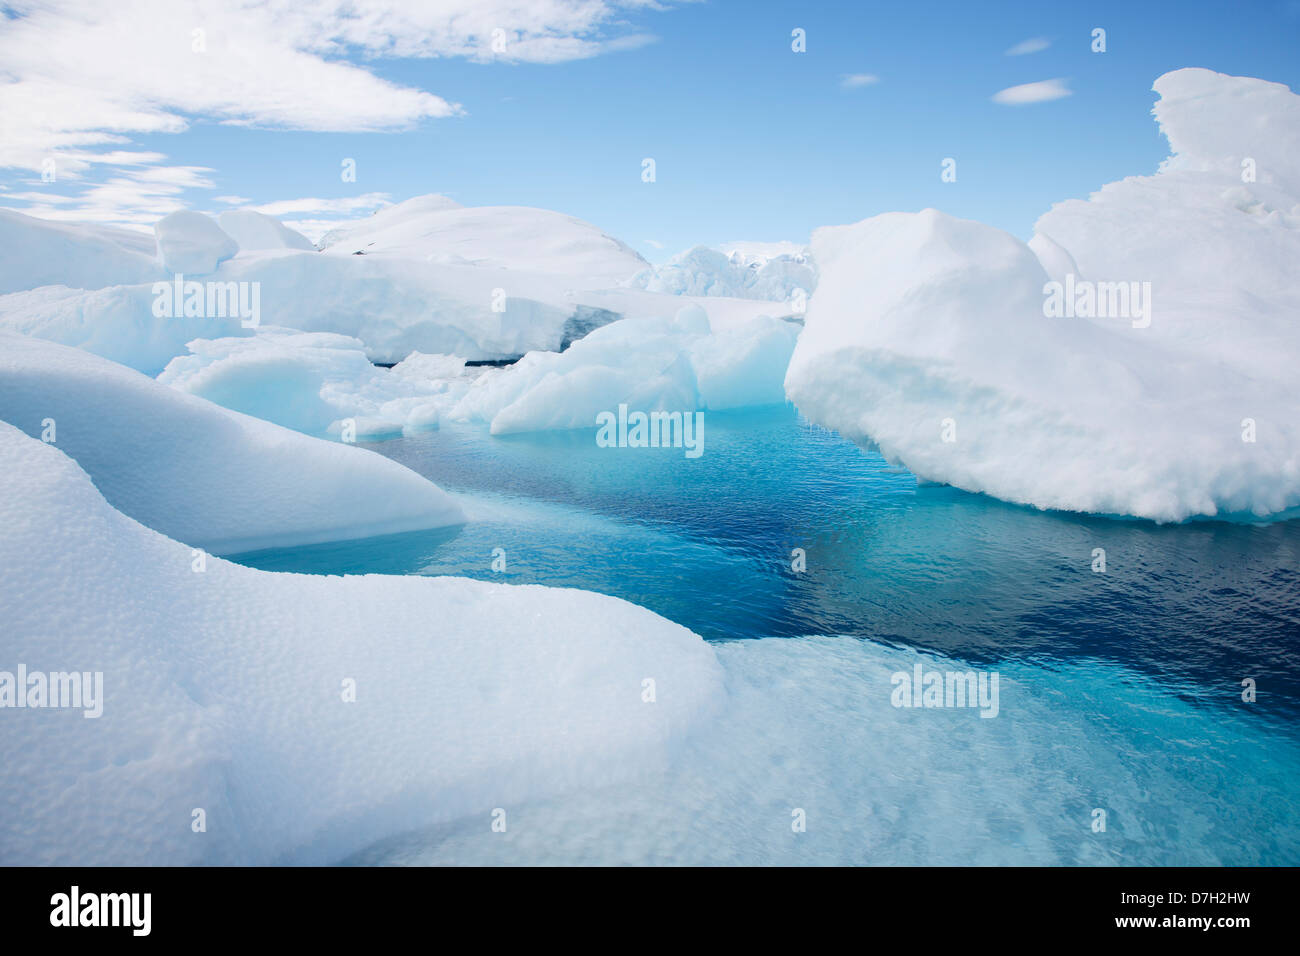 Snow and ice on Detaille Island, South of the Antarctic Circle, Antarctica. - Stock Image